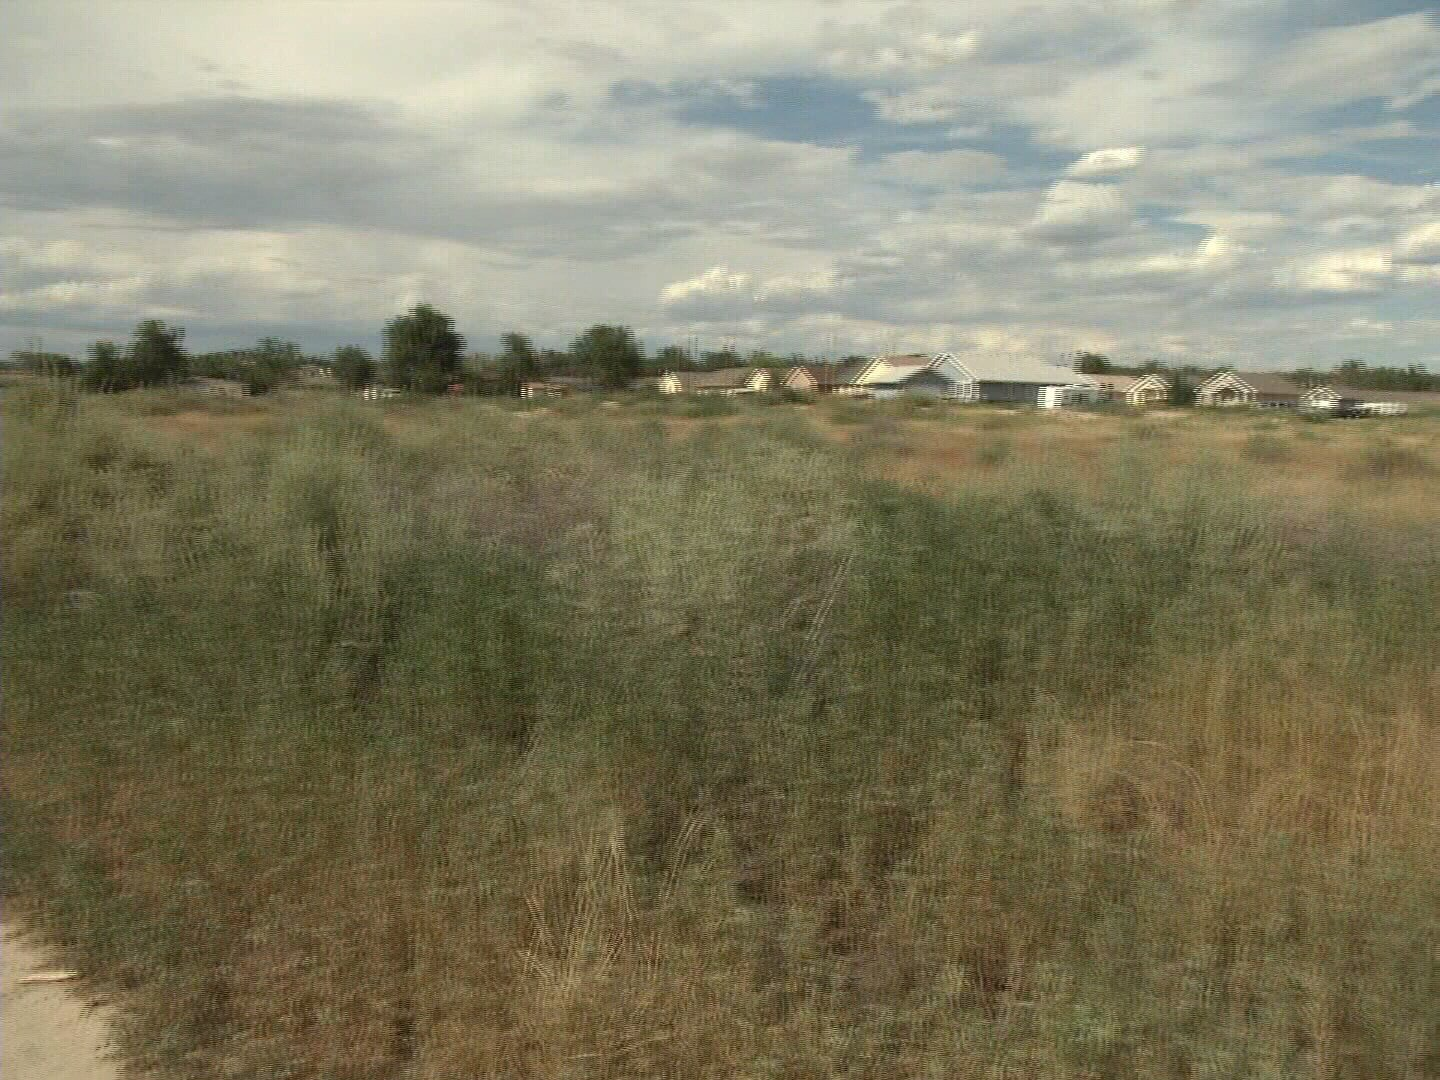 A recycling center was set to be built around Tuxedo and 24th Street in Pueblo until neighbors complained to city council. (KOAA)